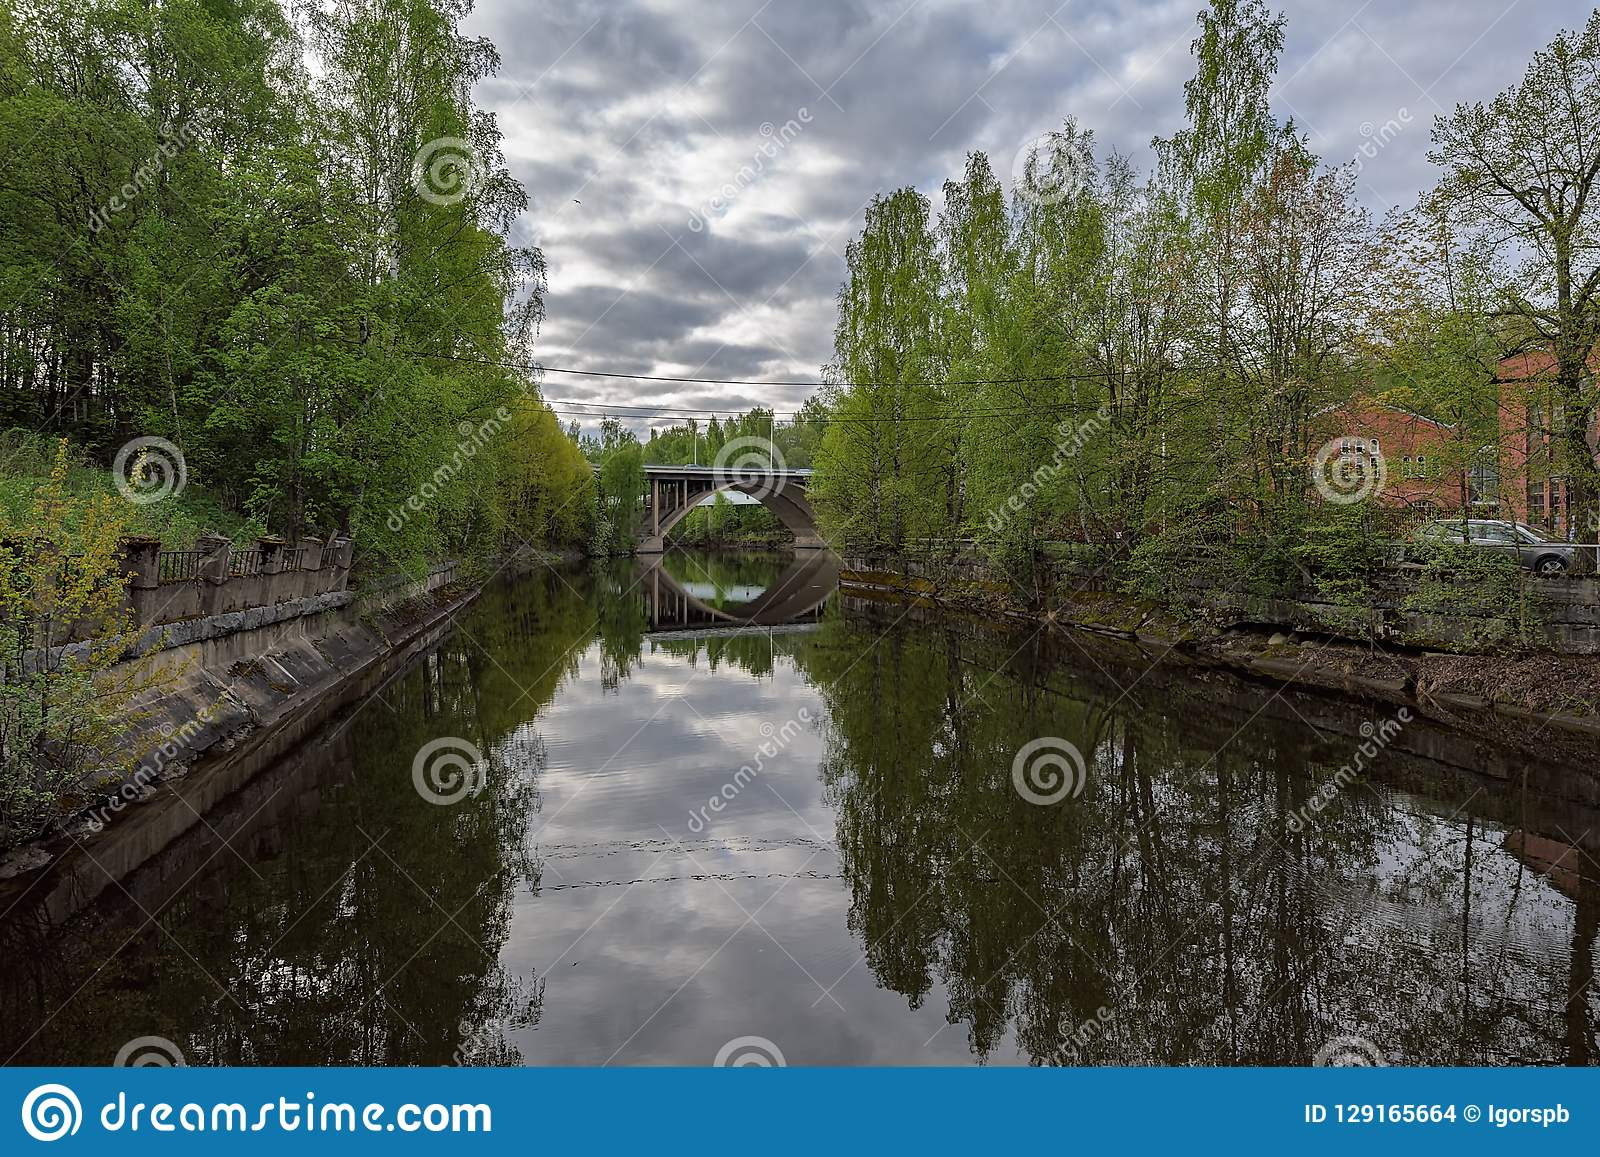 Nokia River Industrial Area Stock Photo - Image of finland